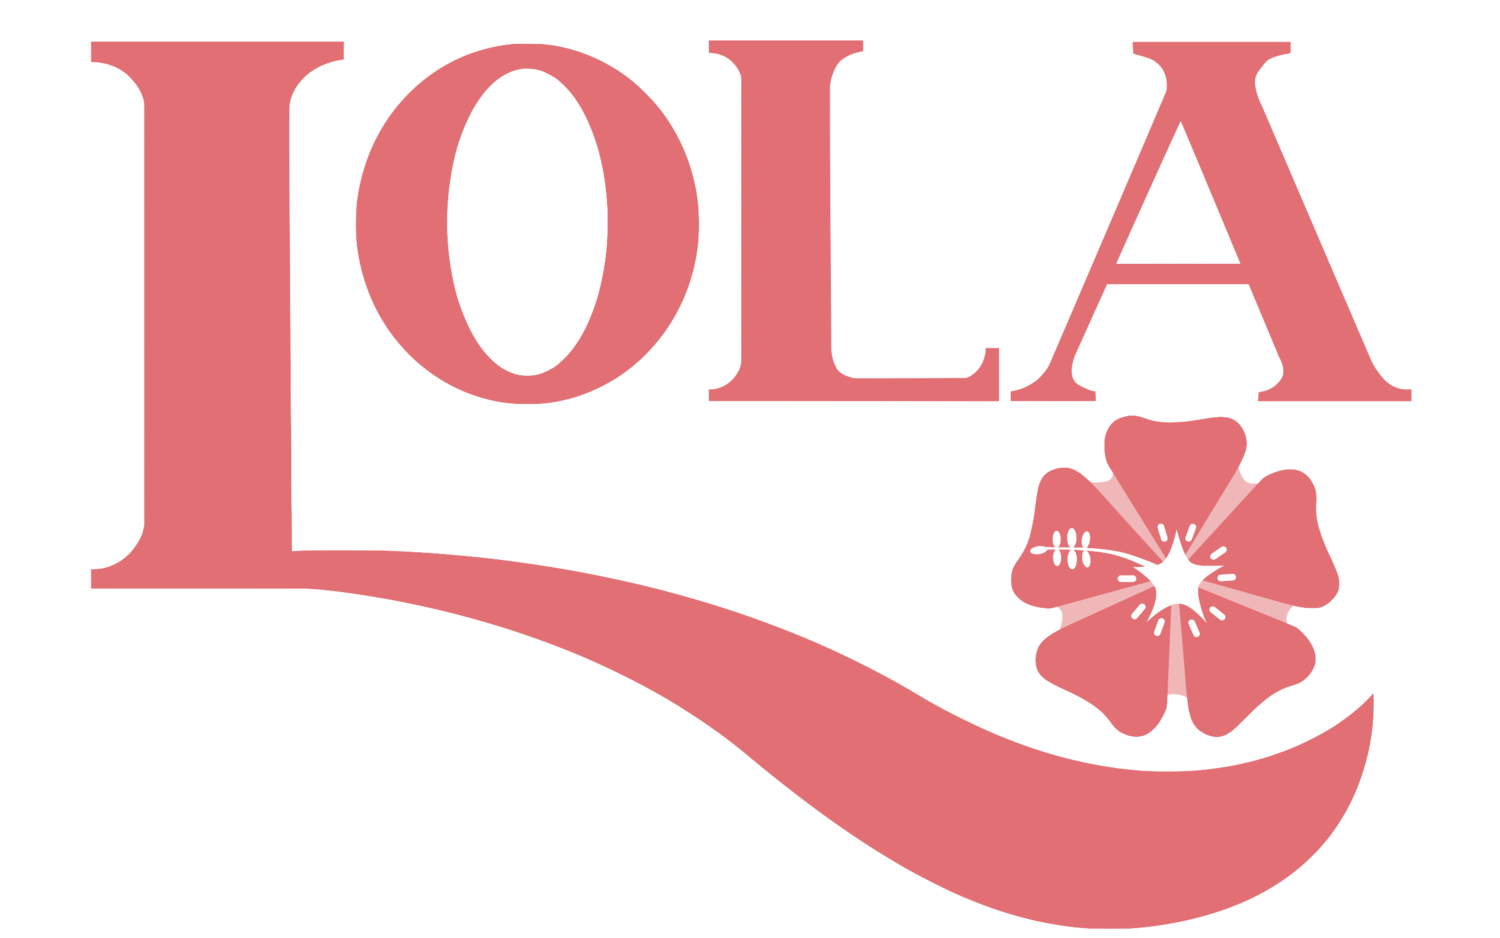 png freeuse Lola events . Catering clipart perfect sign.